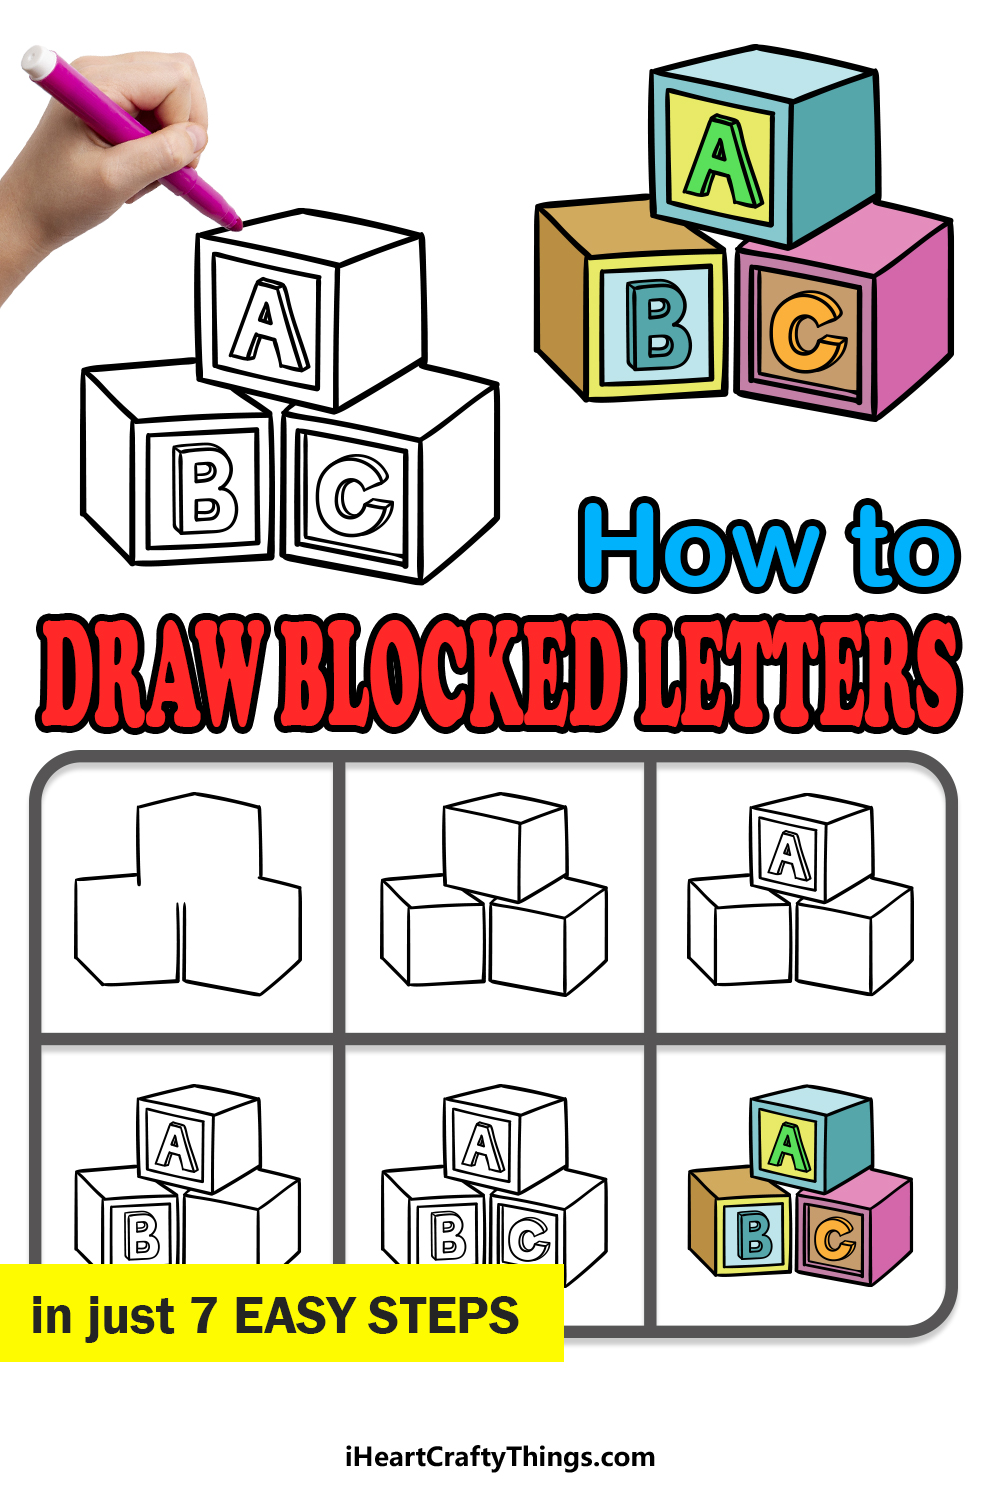 how to draw blocked letters in 7 easy steps